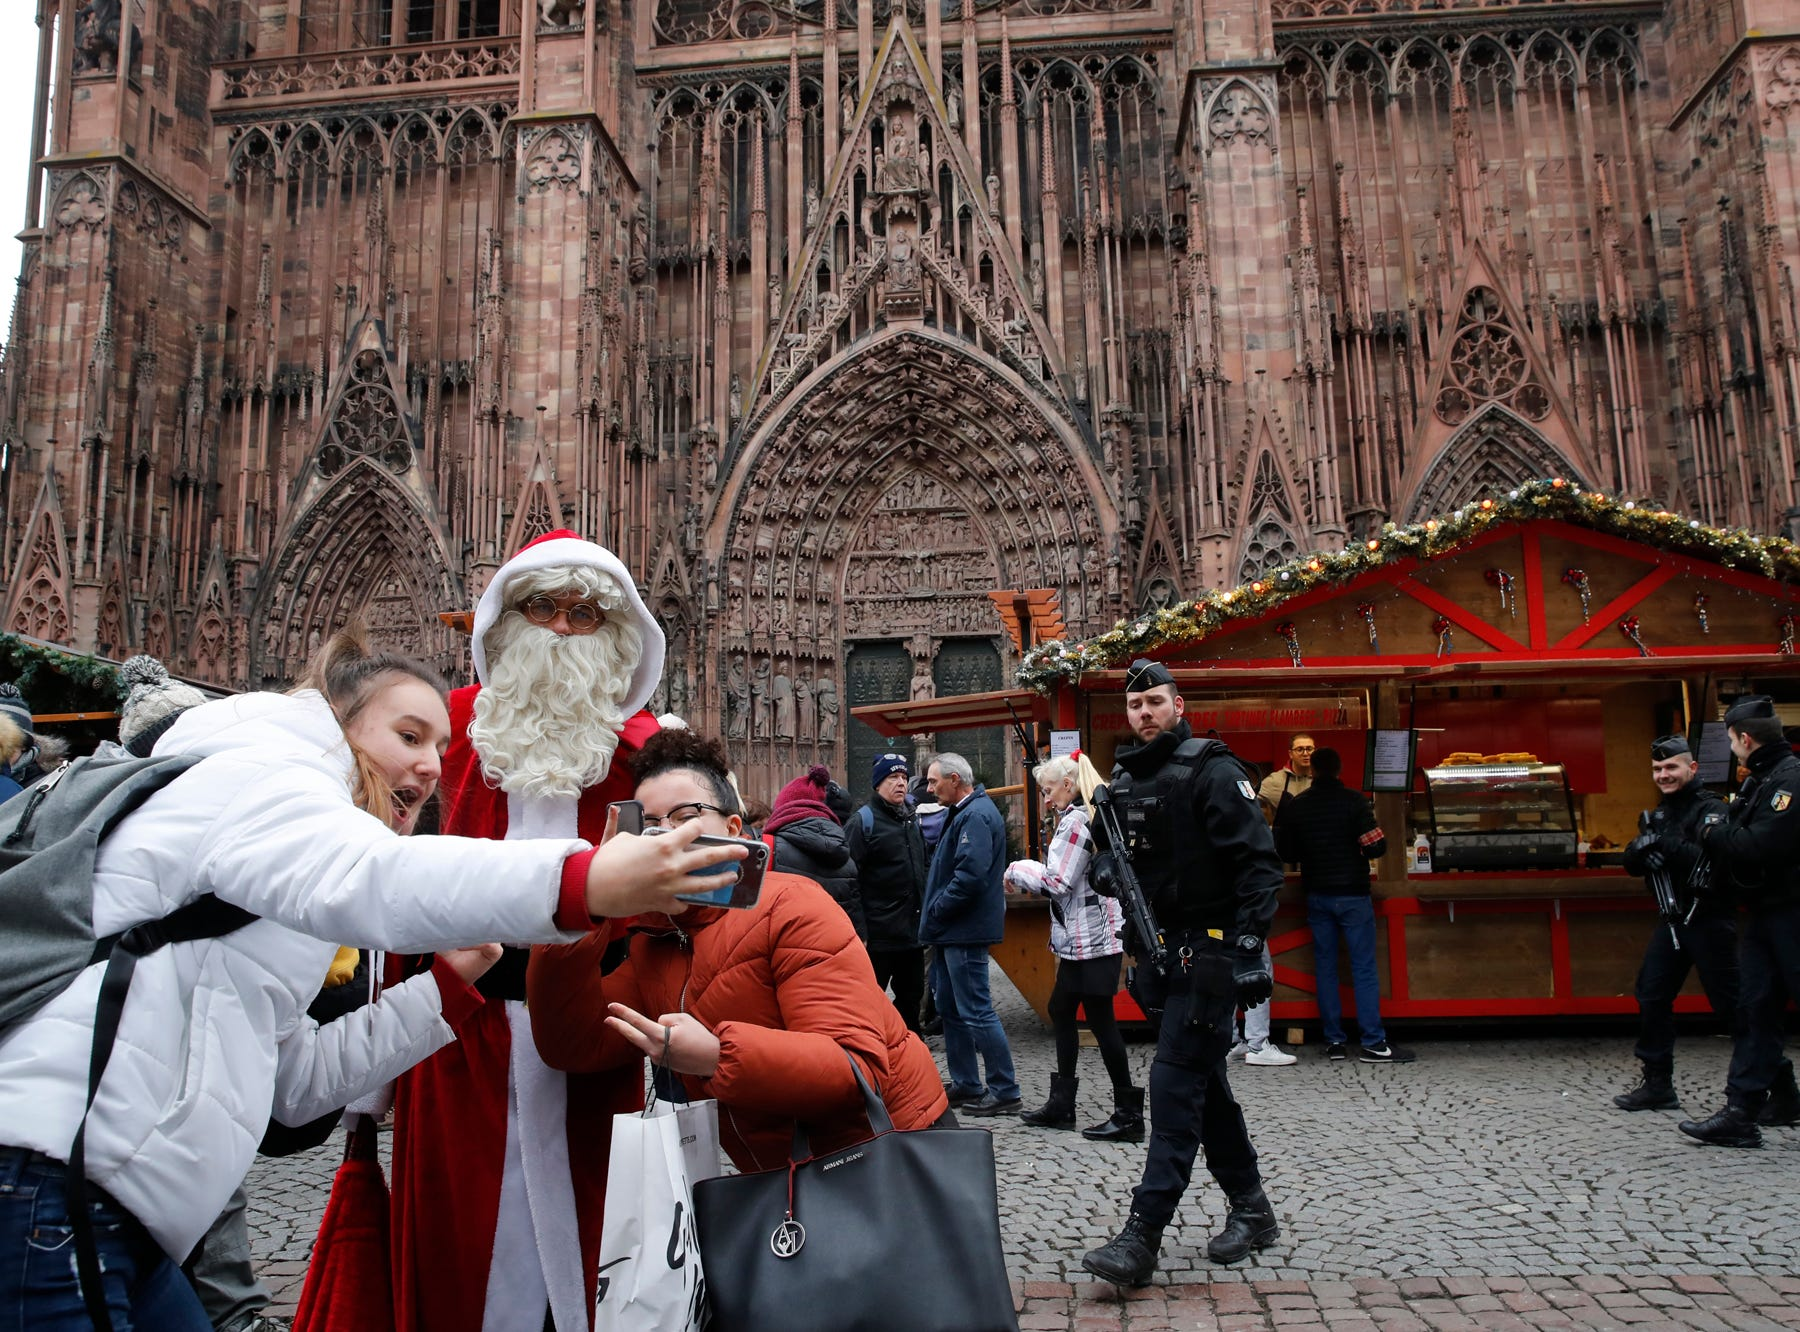 People take a selfie with man dressed like a Santa Claus as police officers patrol outside the cathedral in Strasbourg, eastern France, Friday, Dec.14, 2018. The man authorities believe killed three people during a rampage near a Christmas market in Strasbourg died Thursday in a shootout with police at the end of a two-day manhunt, French authorities said. (AP Photo/Christophe Ena)